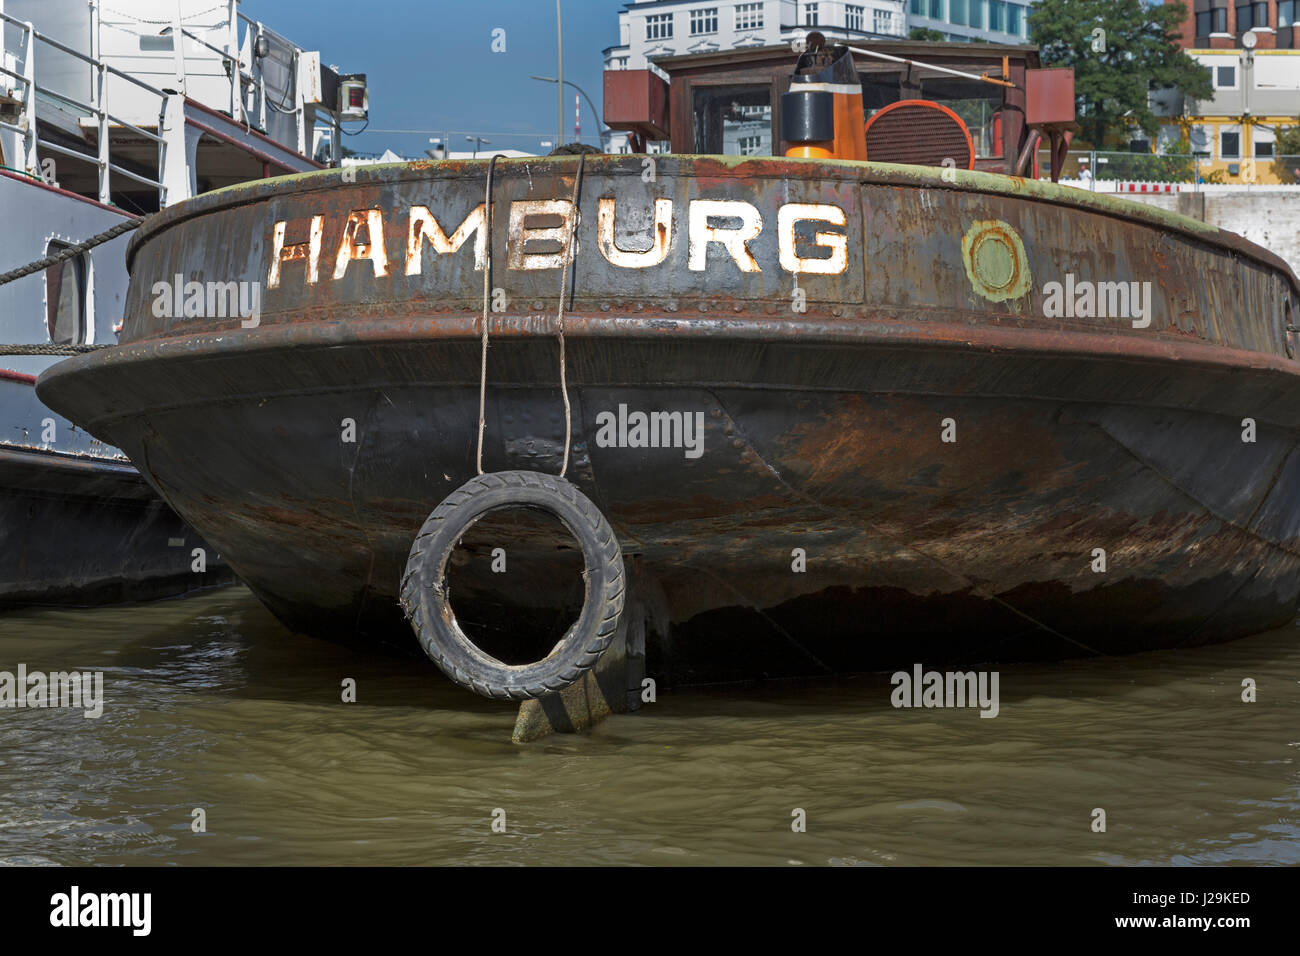 Old Tug Boat Stock Photos Old Tug Boat Stock Images Alamy